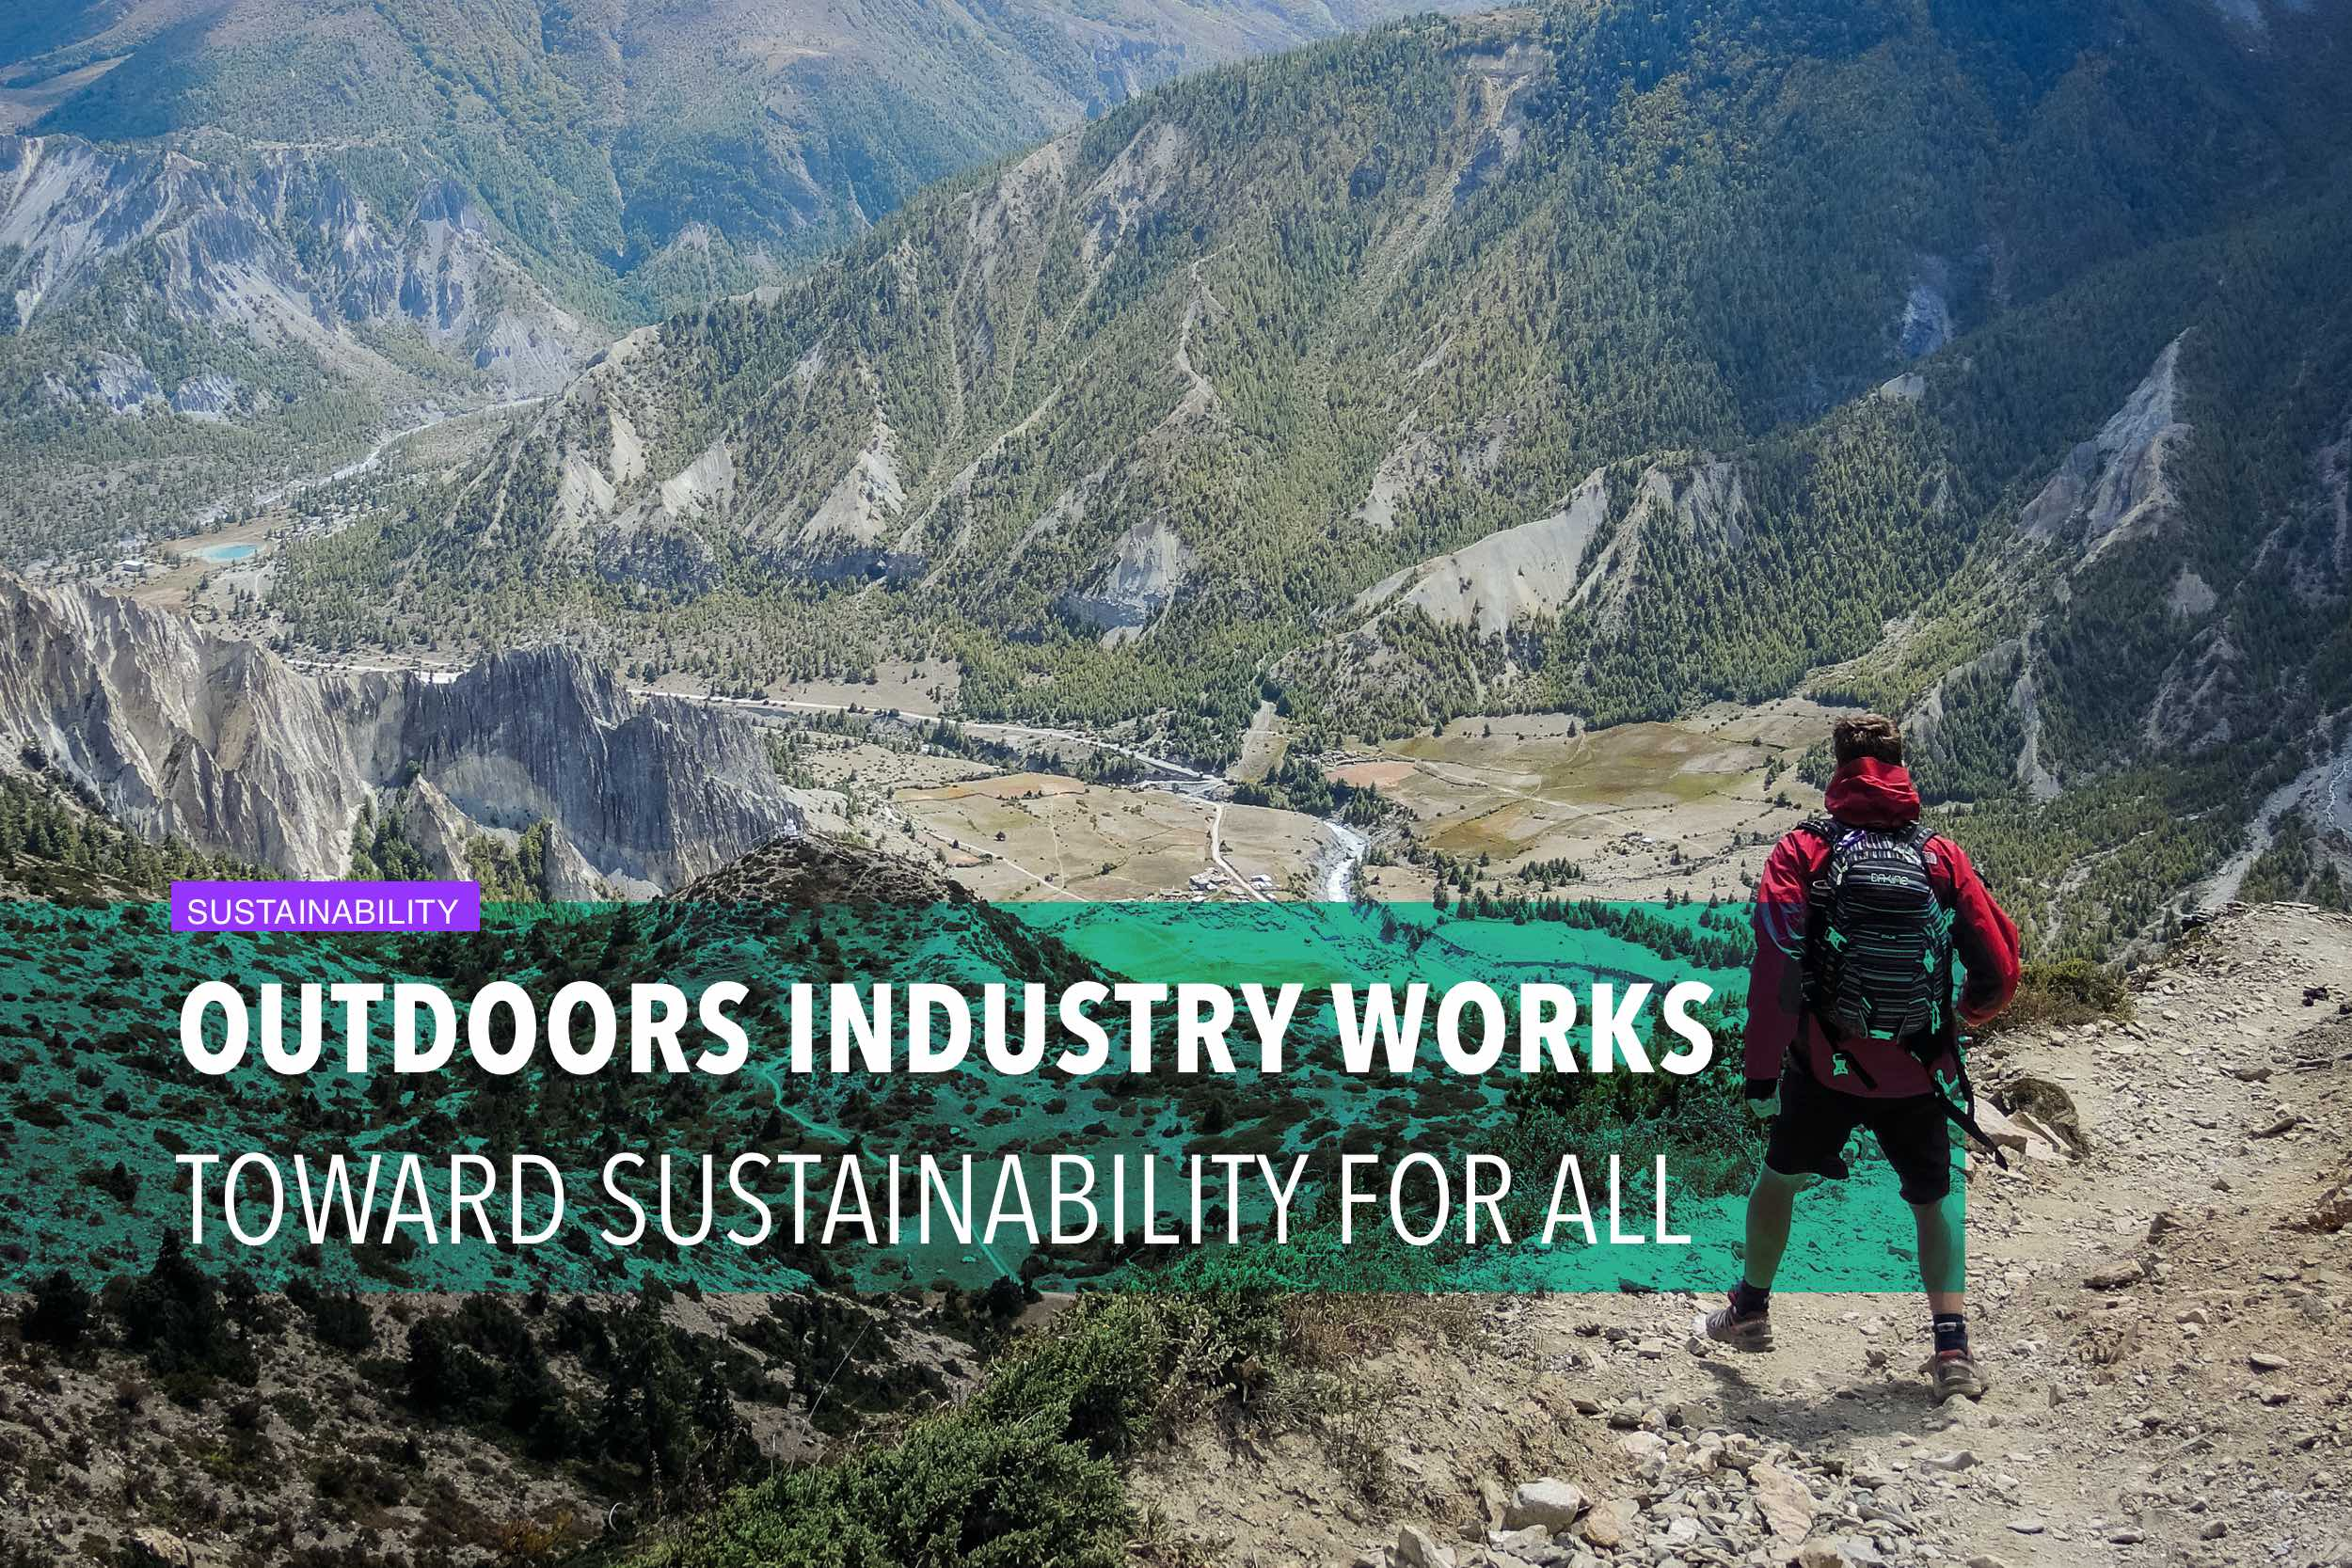 Outdoors industry works toward sustainability for all